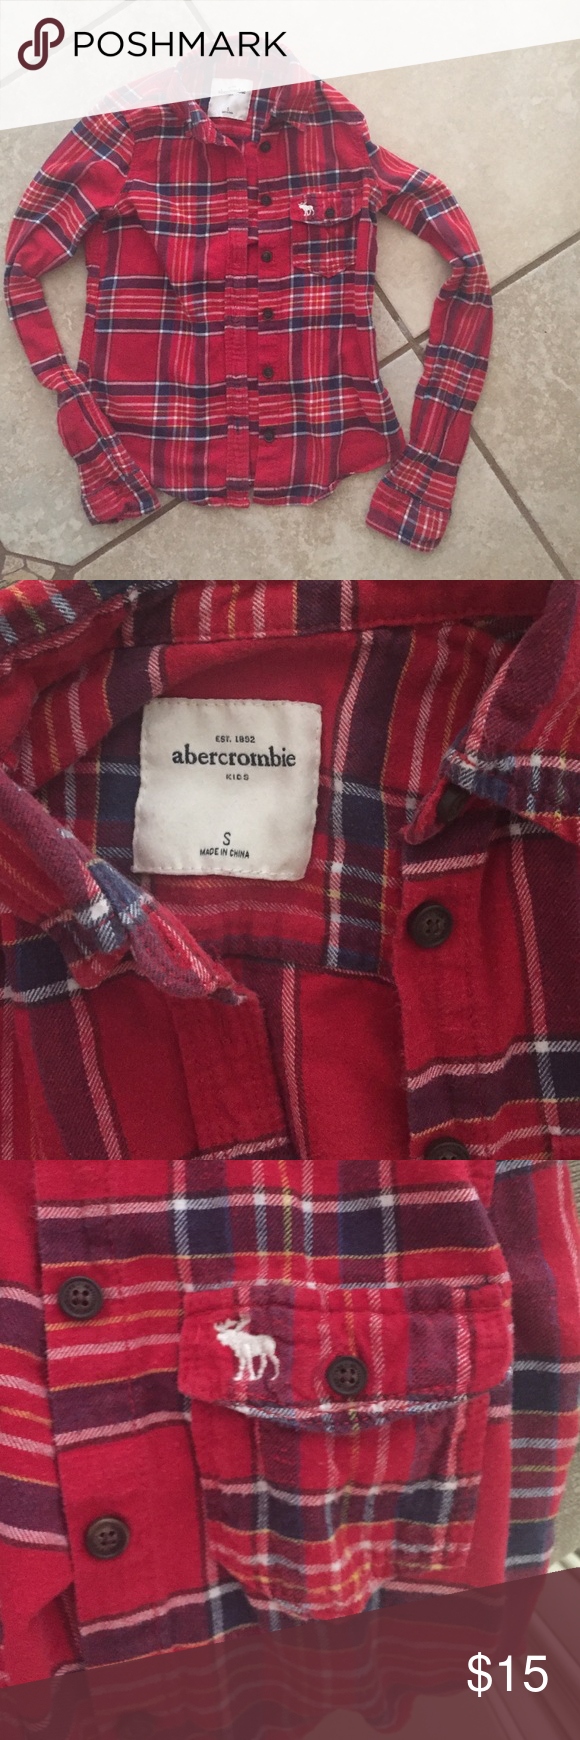 Red flannel shirts  Abercrombie kids flannel shirt  Abercrombie kids Abercrombie girls